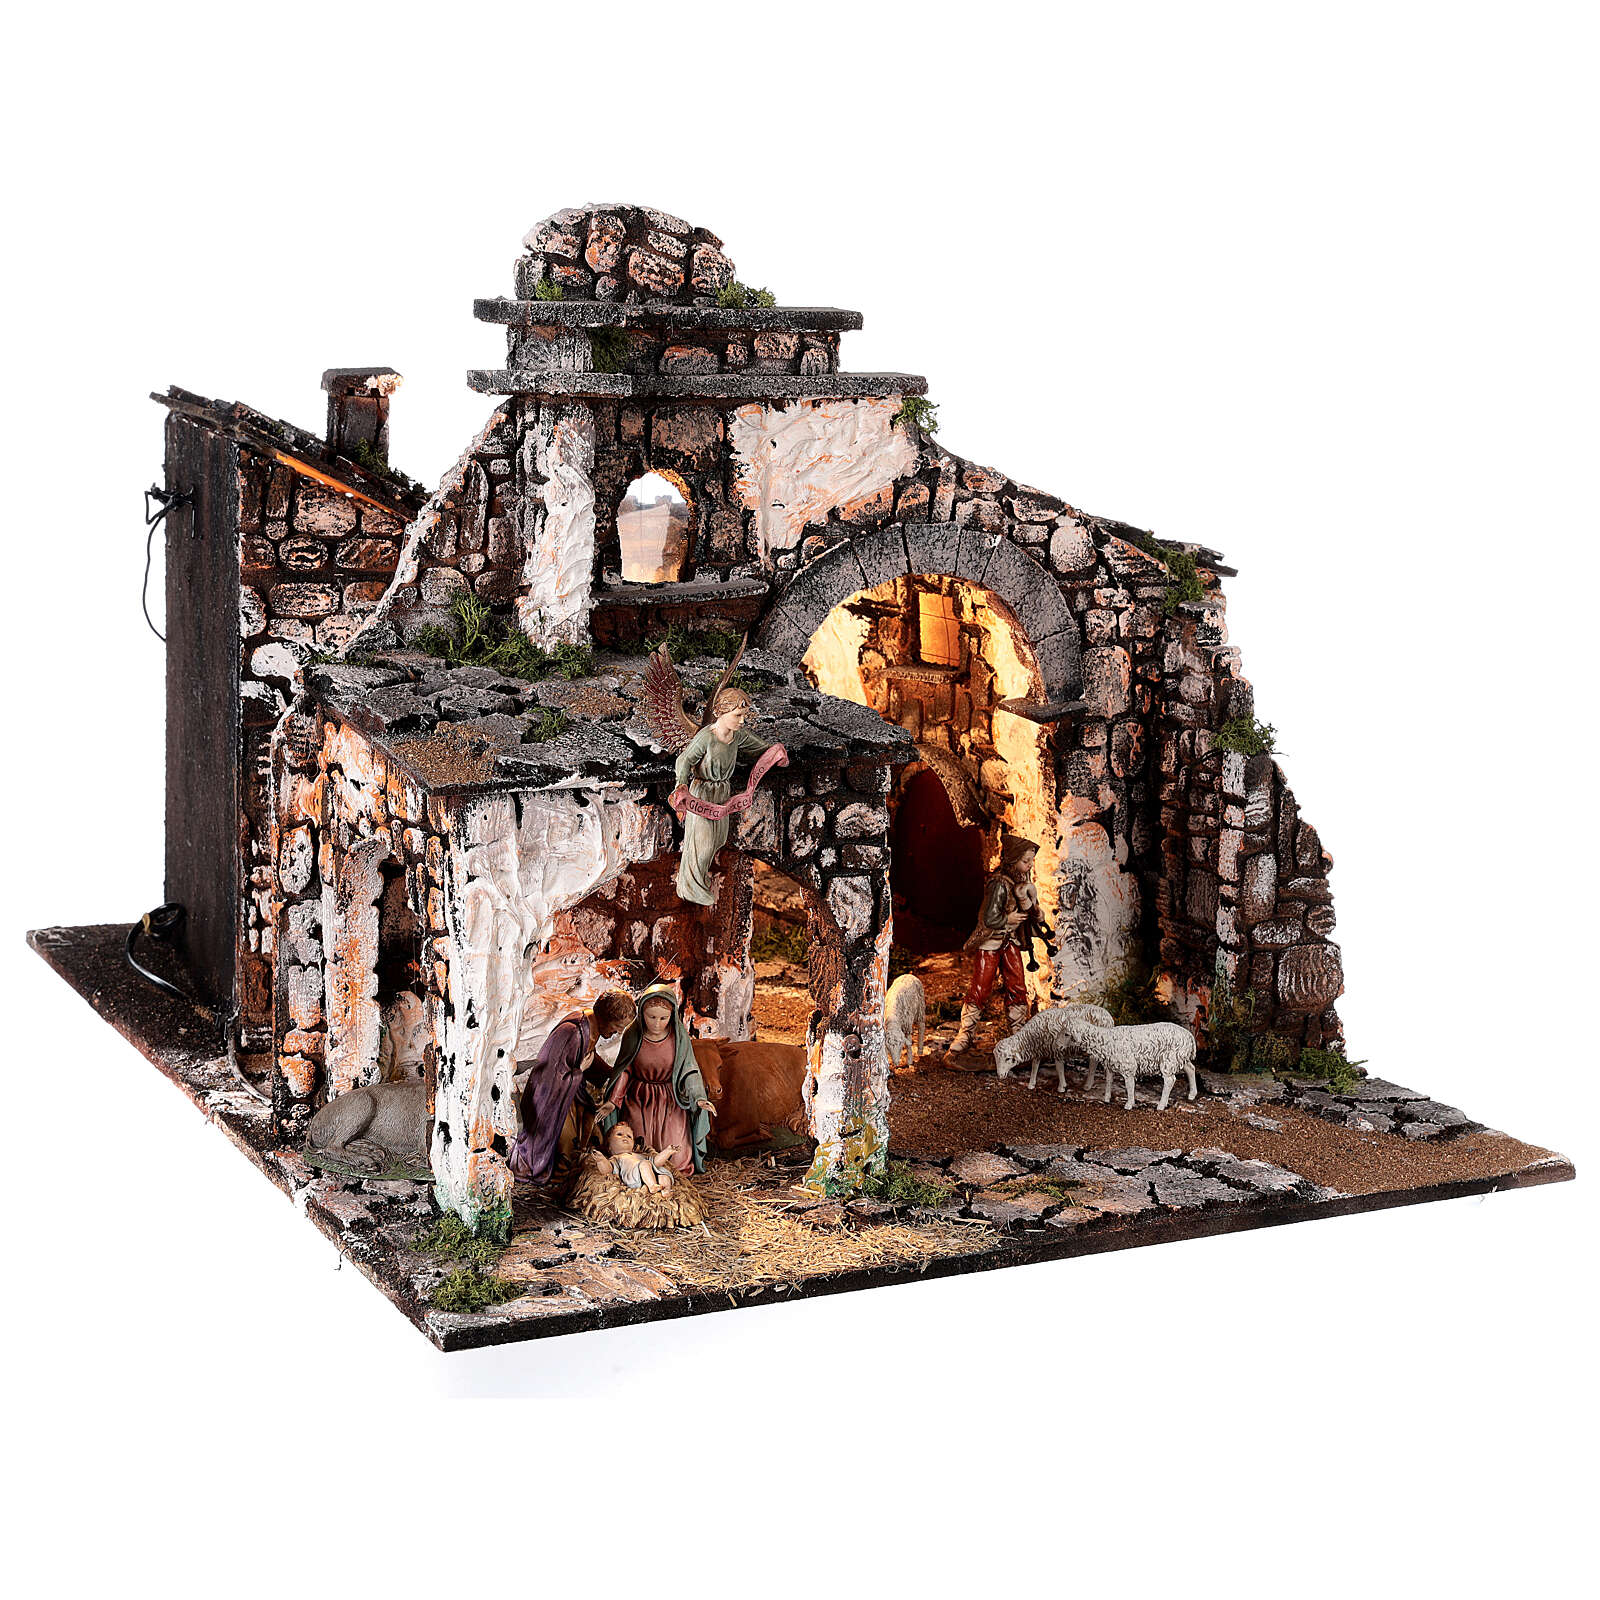 Medieval hamlet 55x80x50 cm with mirror and 12 cm figurines 4